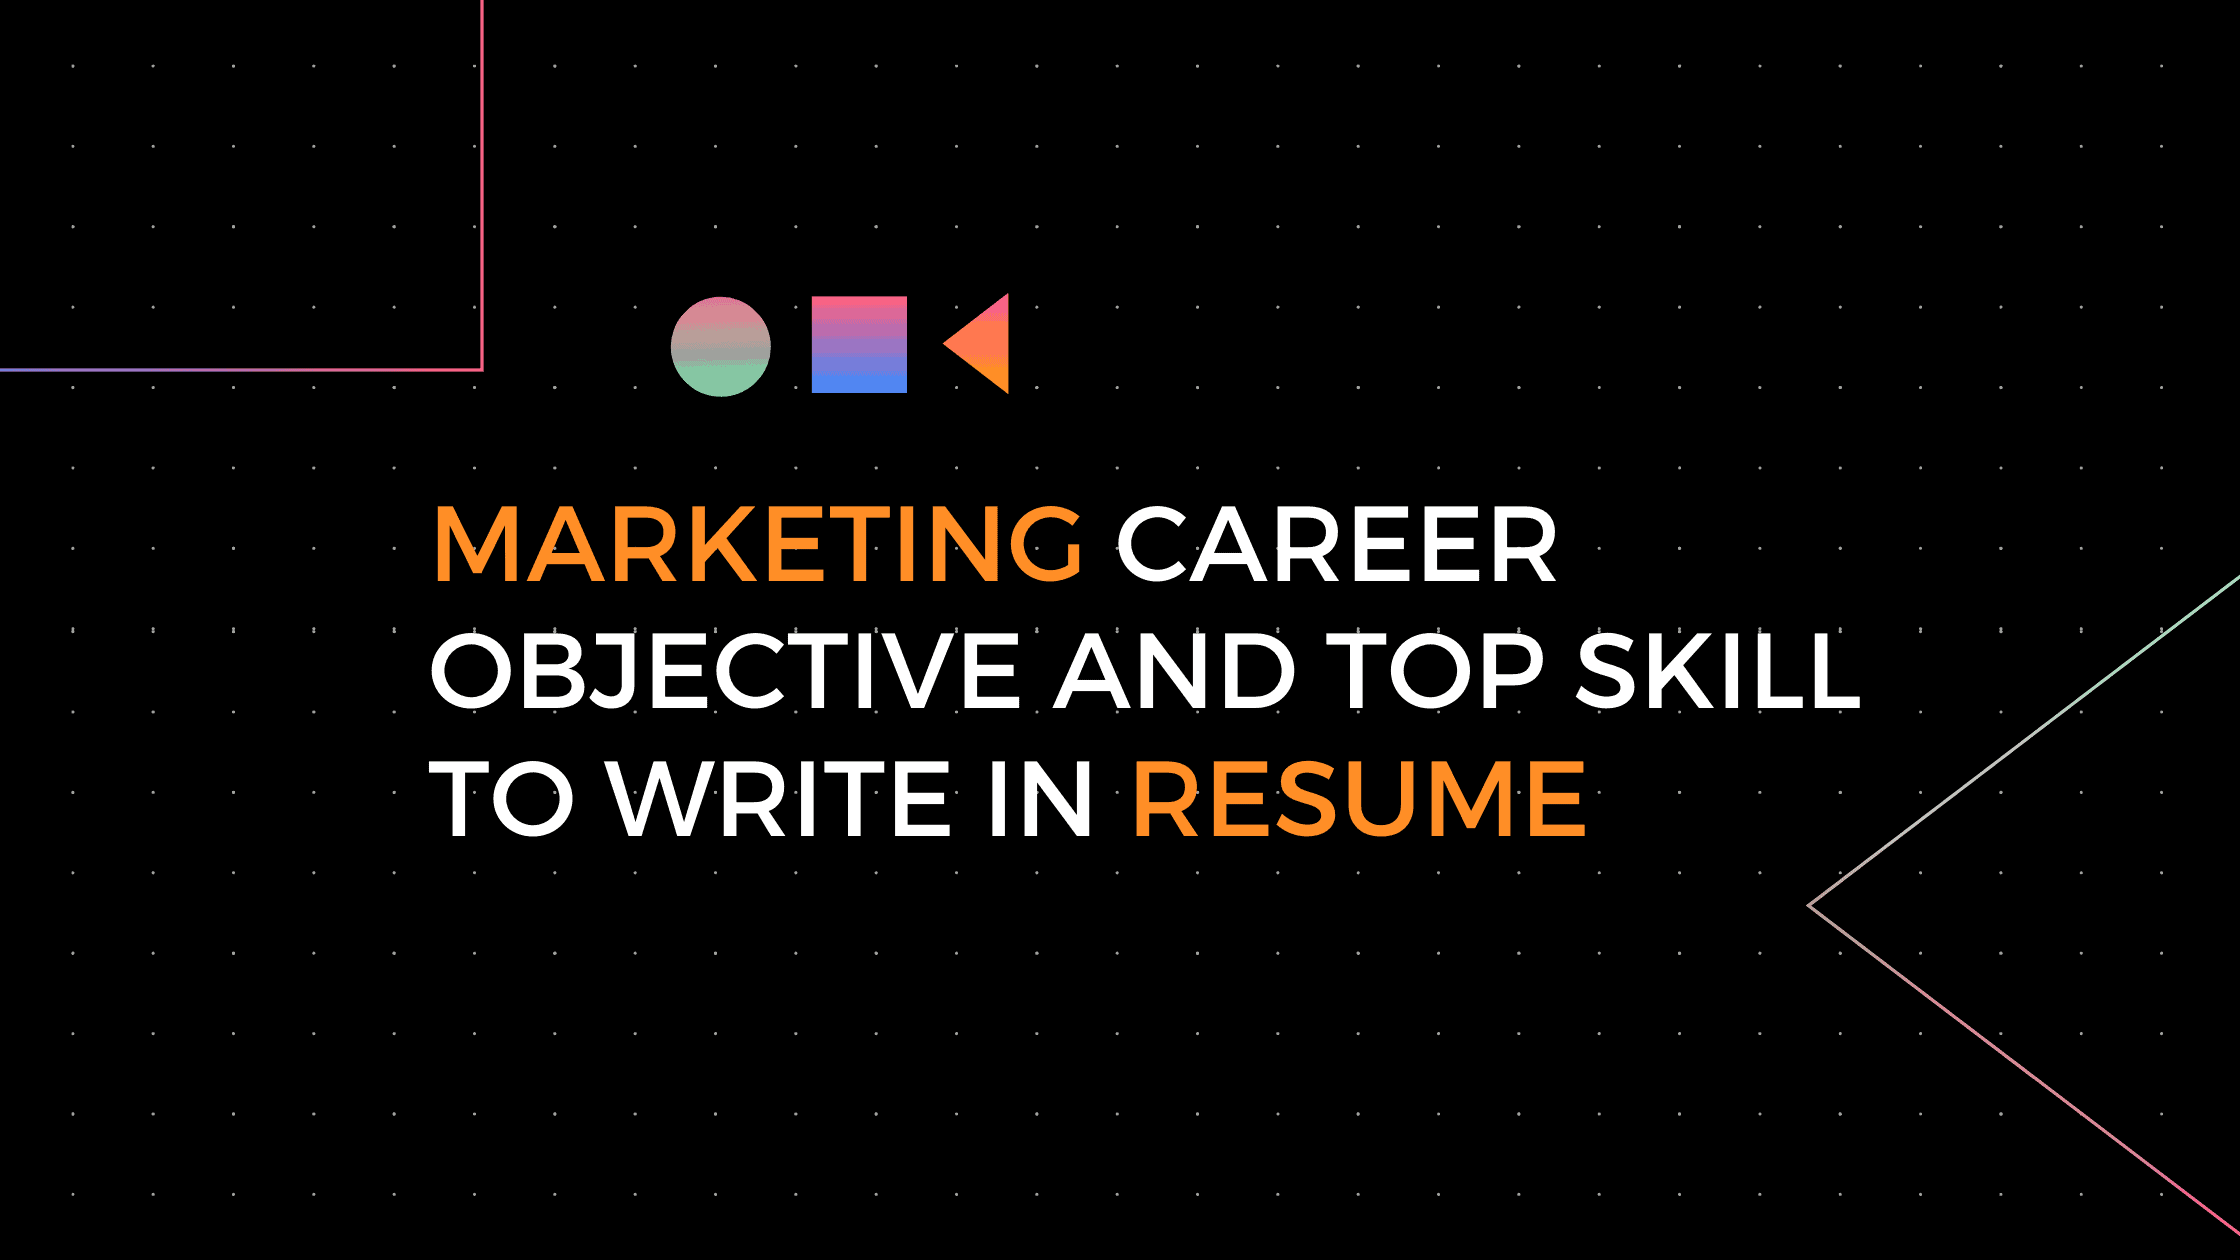 MARKETING CAREER OBJECTIVE AND TOP SKILL TO WRITE IN MARKETING RESUME